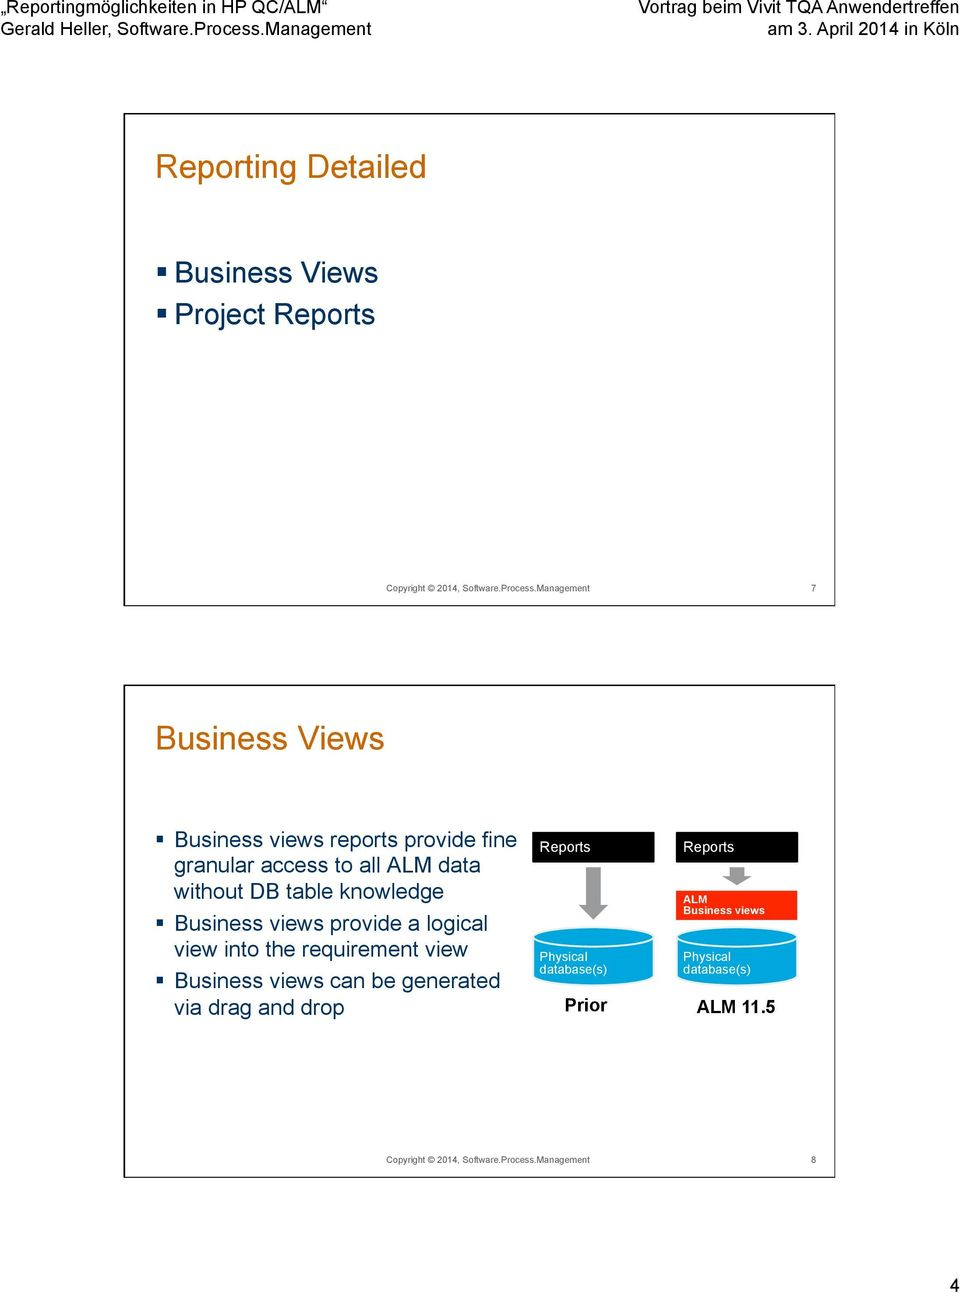 knowledge Business views provide a logical view into the requirement view Business views can be generated via drag